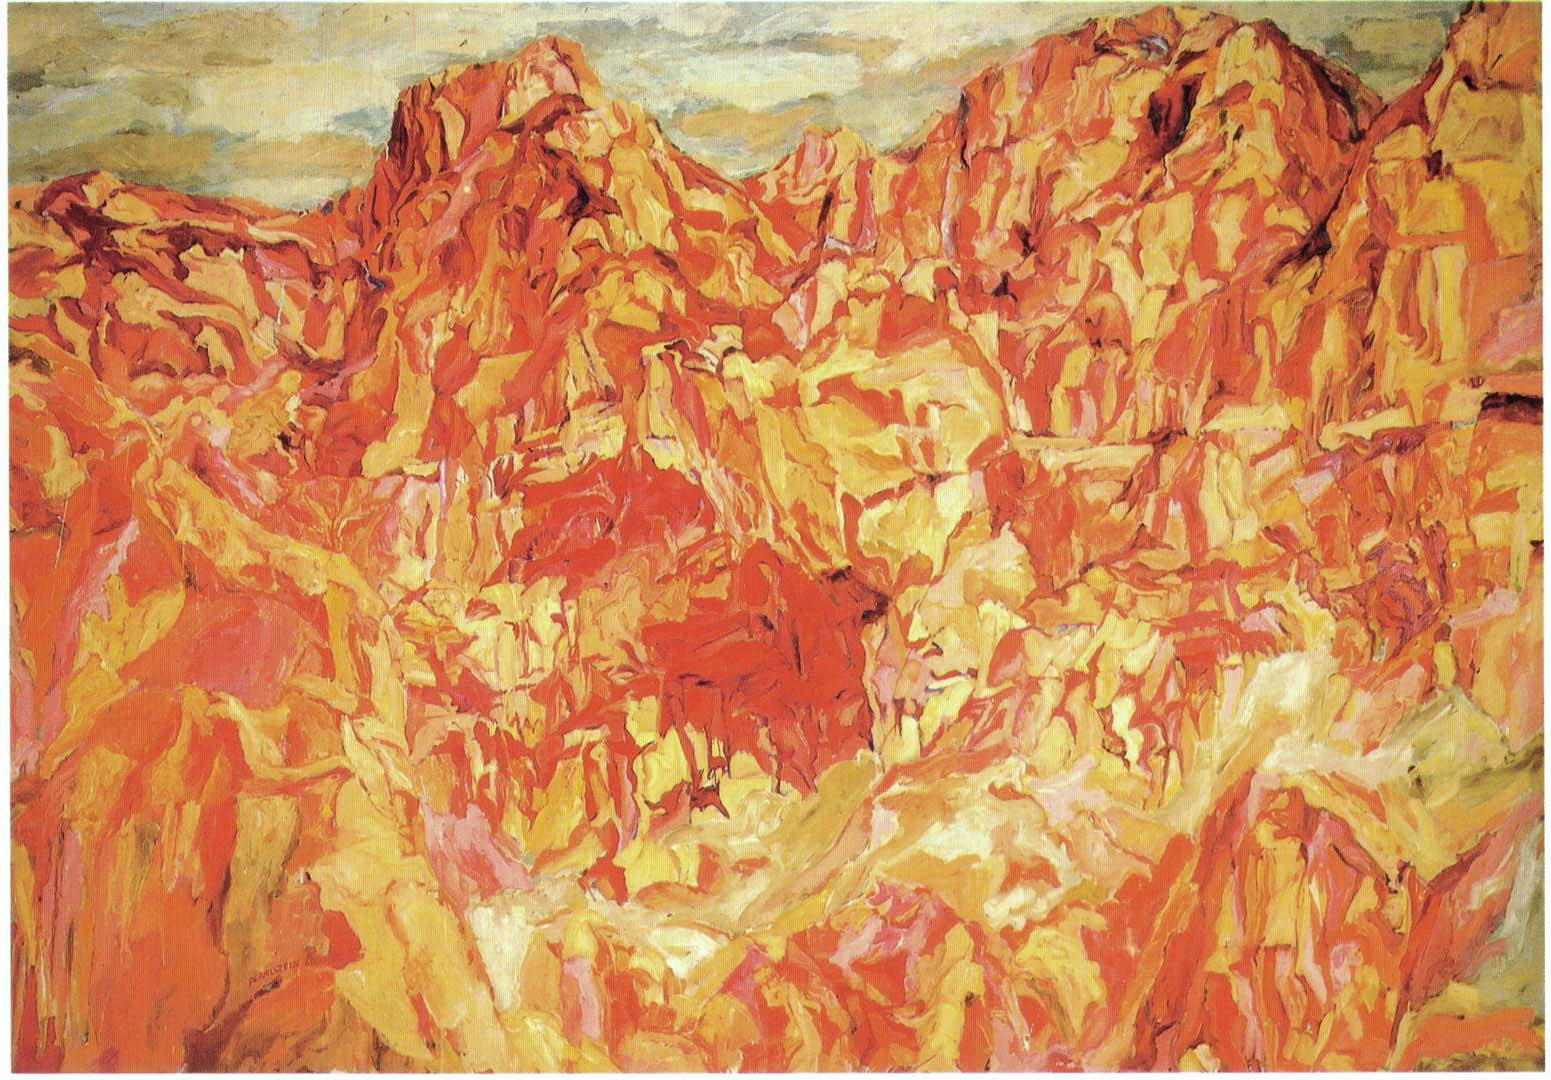 1960 Positano #2 Oil on Canvas 67 x 96